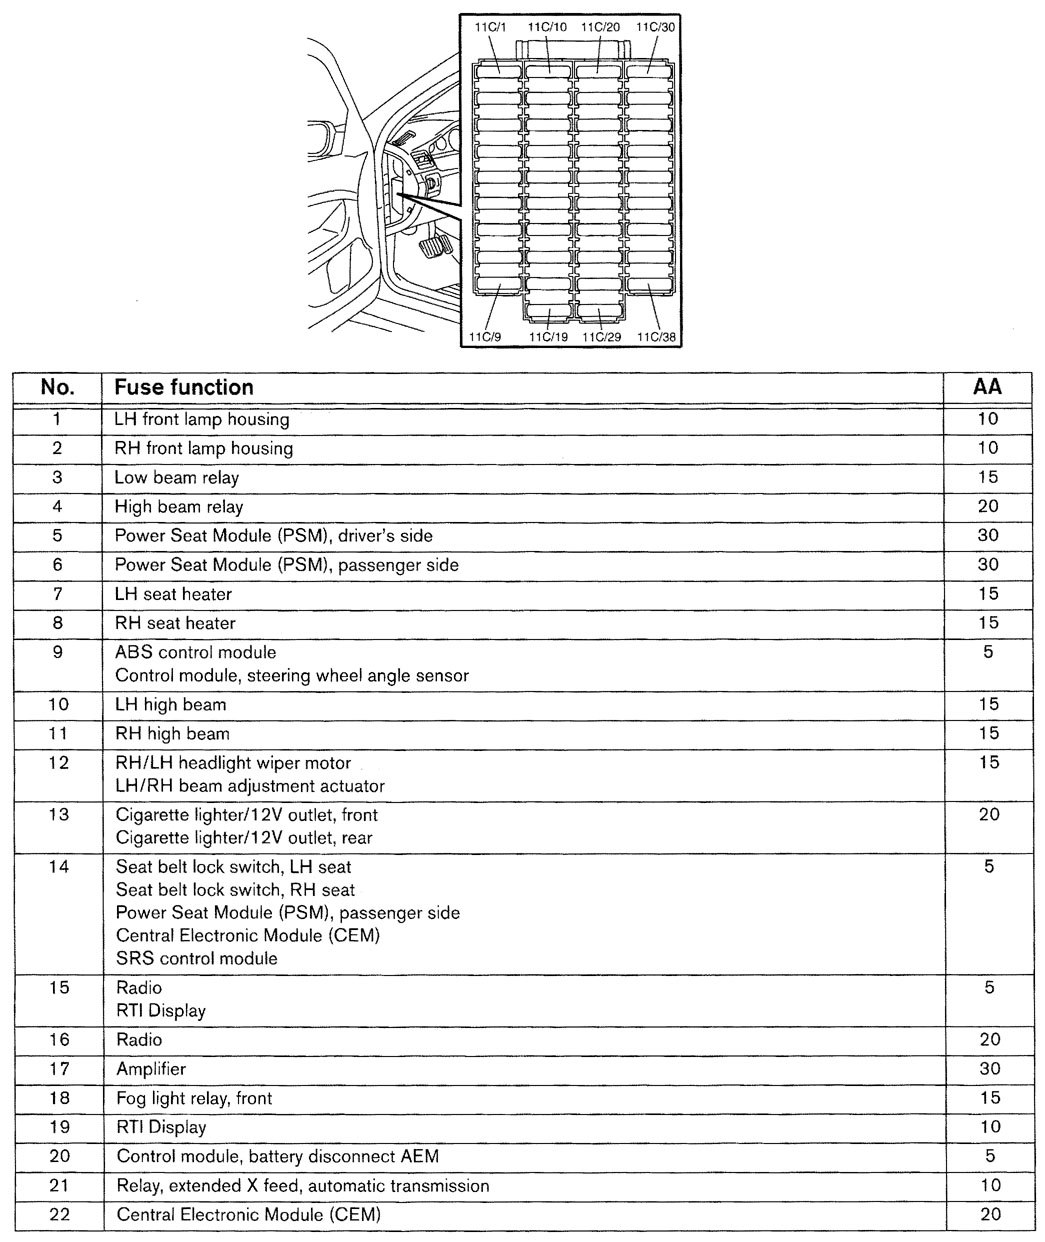 Volvo V70 2001 Wiring Diagrams Fuse Panel Carknowledge Box Diagram Part 5